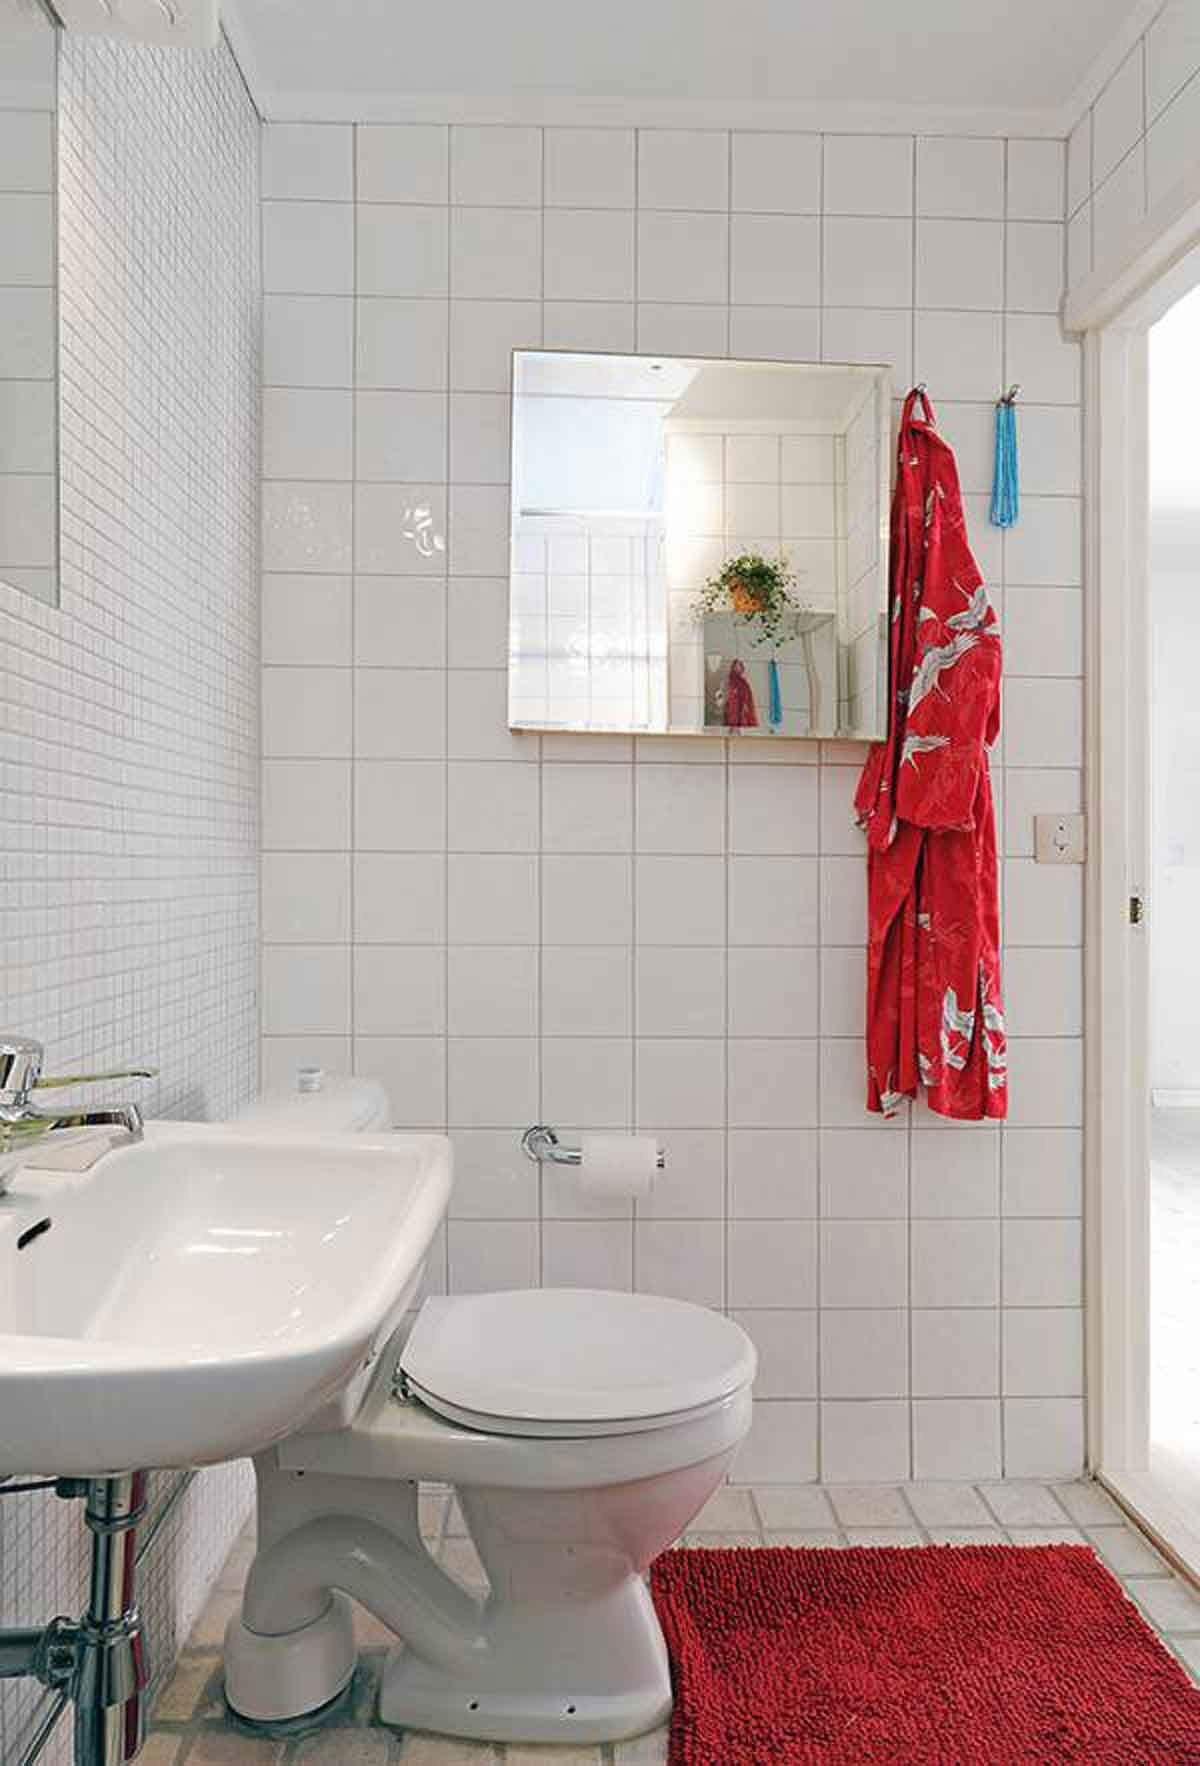 Home Interior Design The Right Way | Pinterest | Small bathroom ...